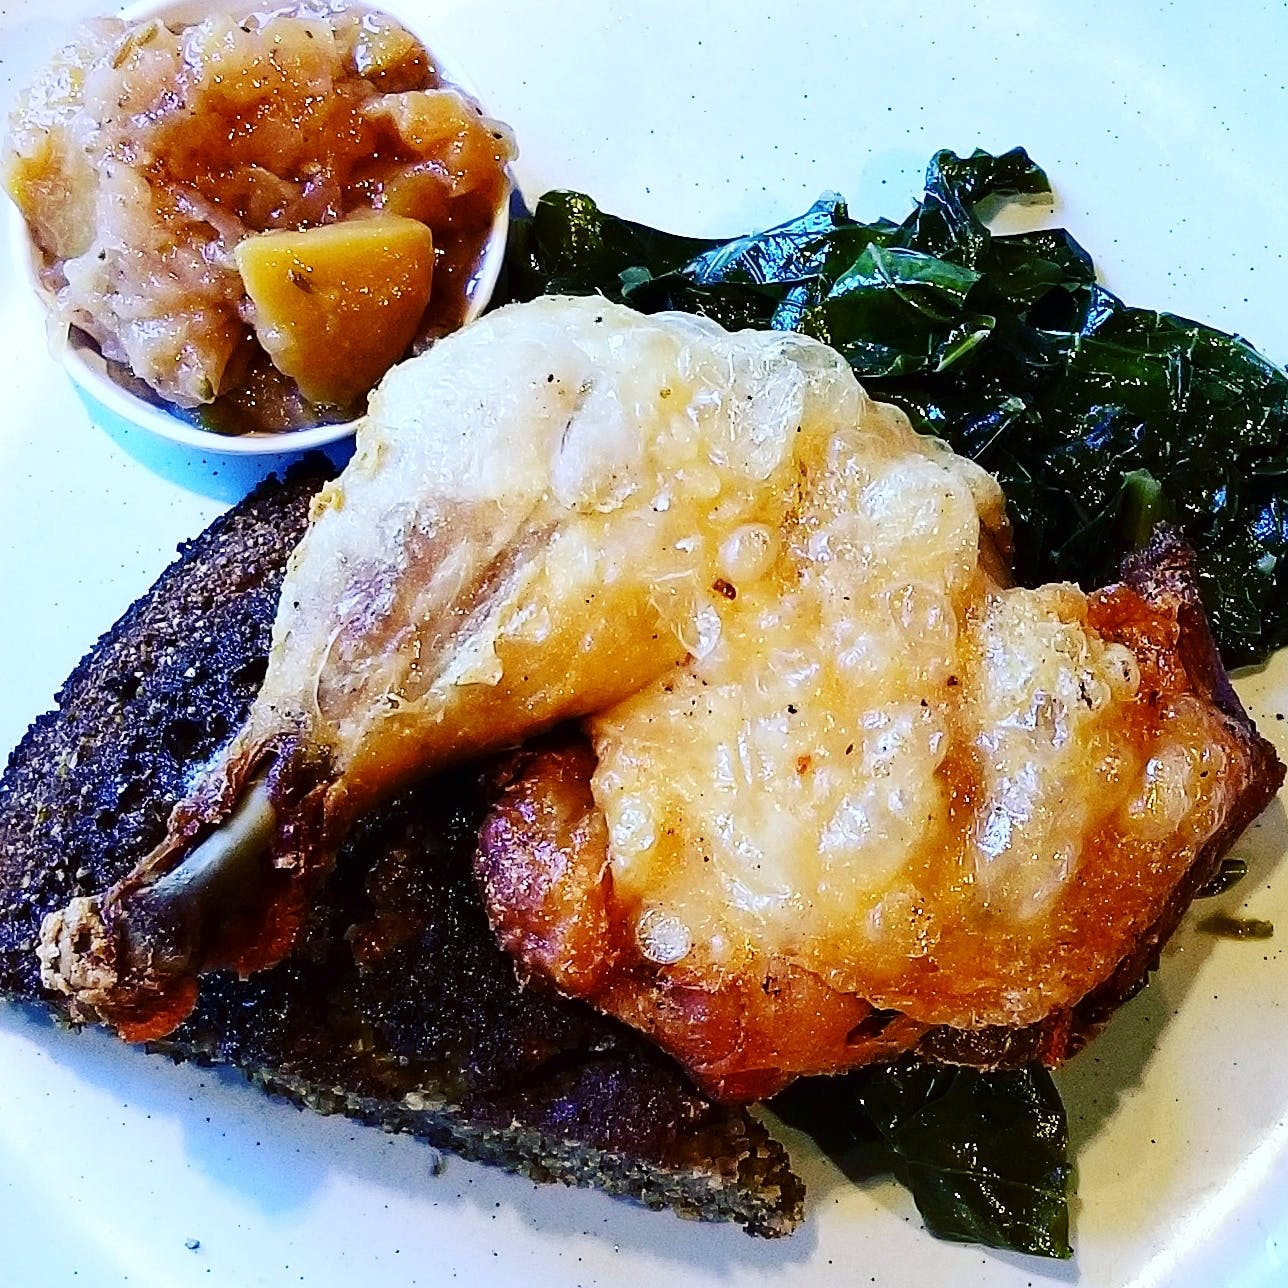 brunch places in dc